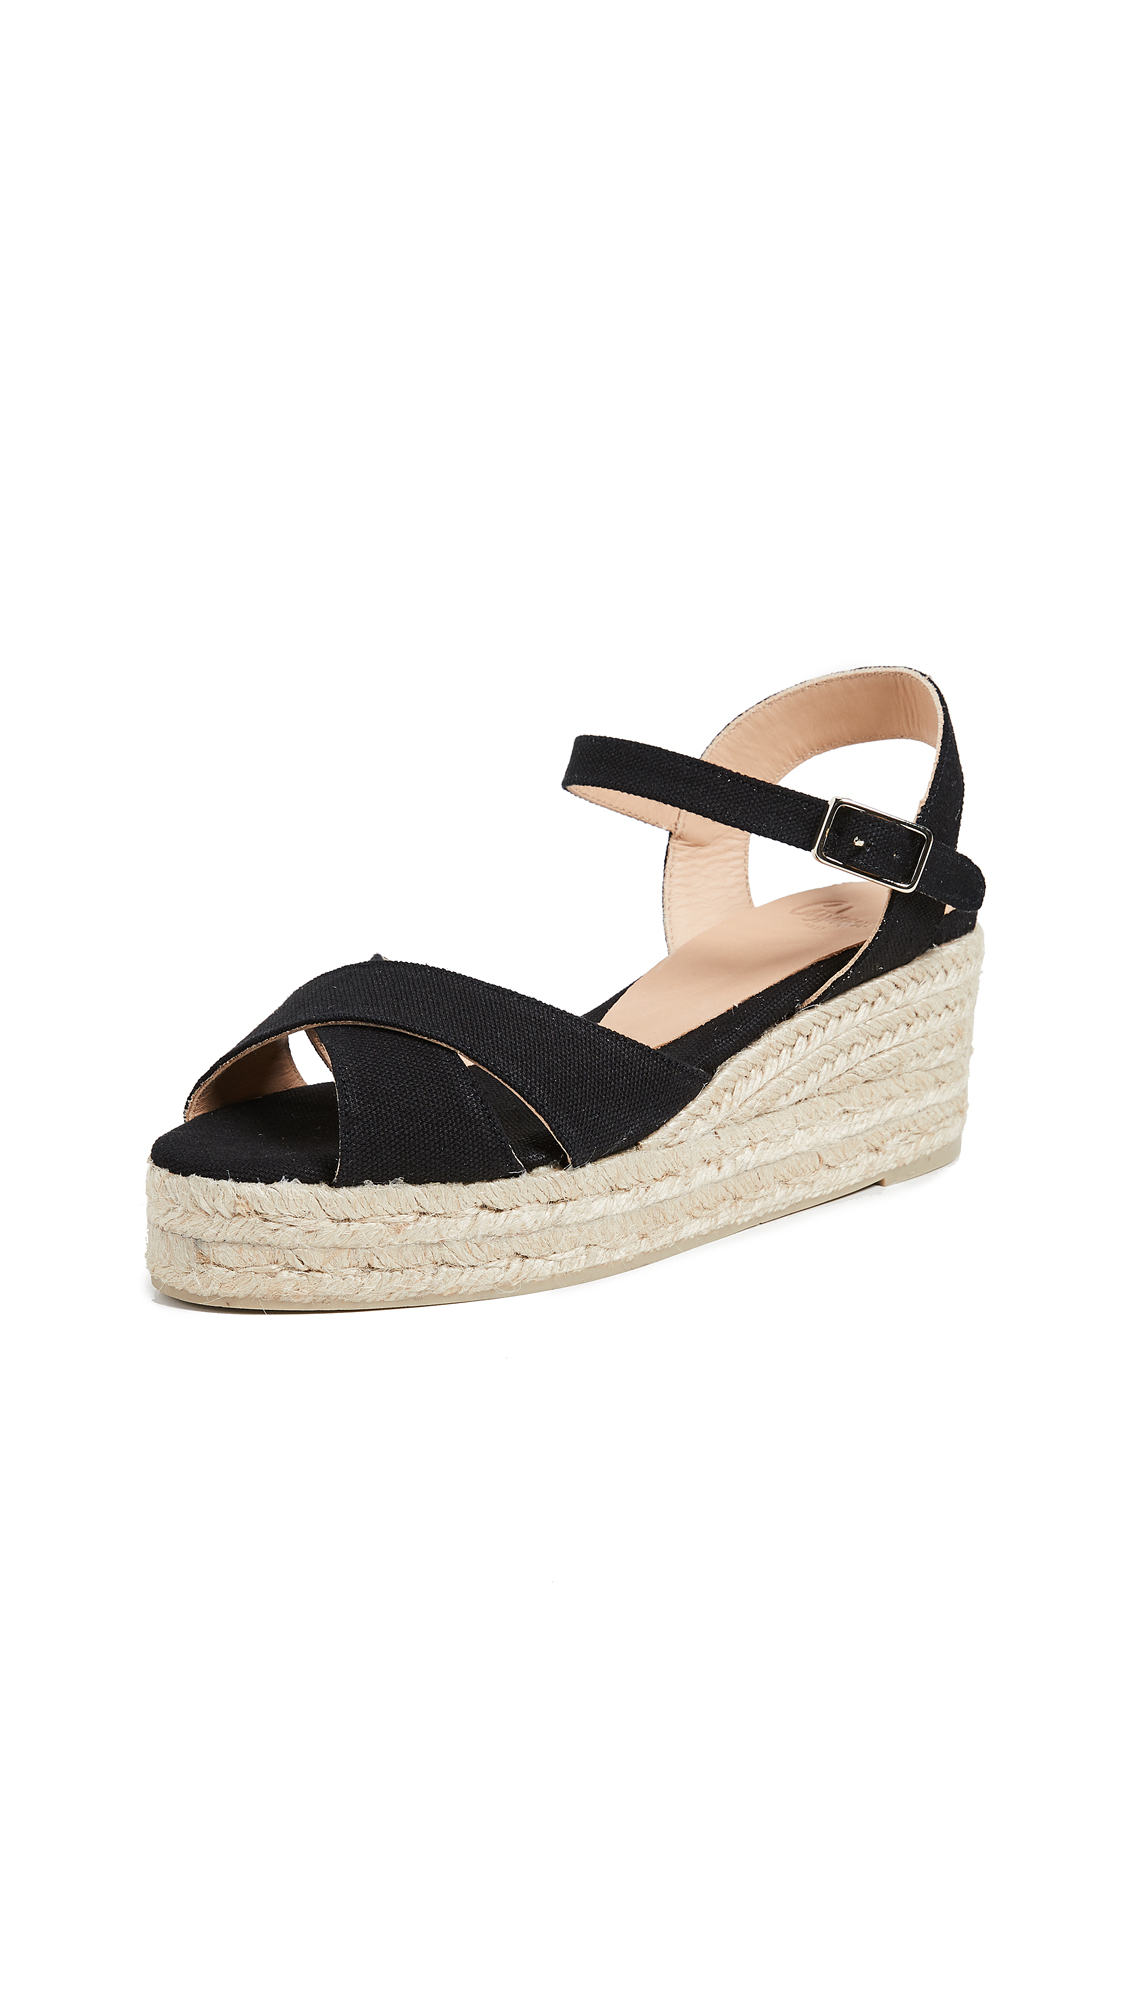 Castaner Blaudell Crisscross Low Wedges - Black